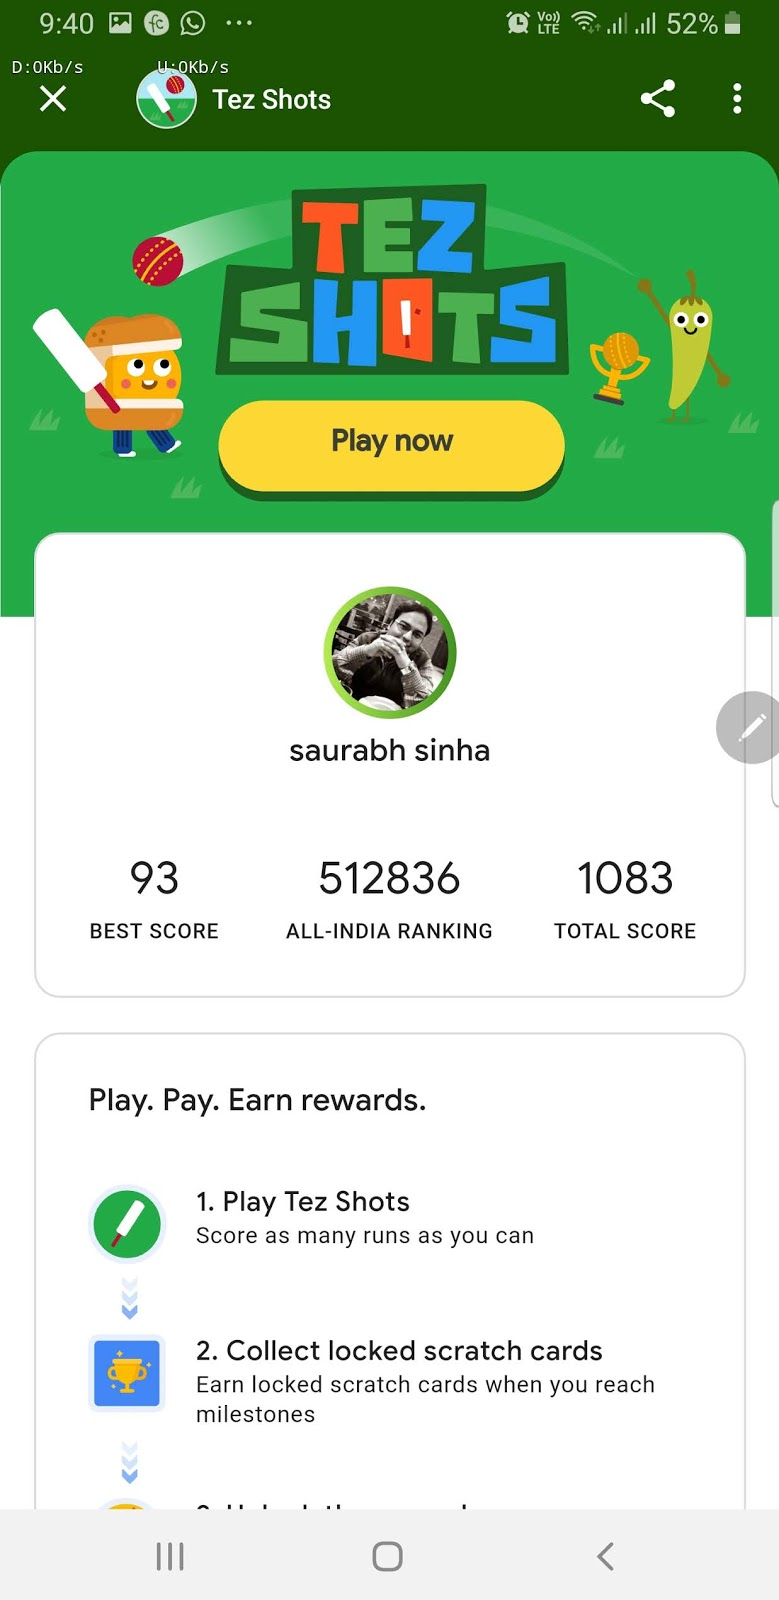 Play Cricket In Google Pay Tez And Earn Up To Rs 2000